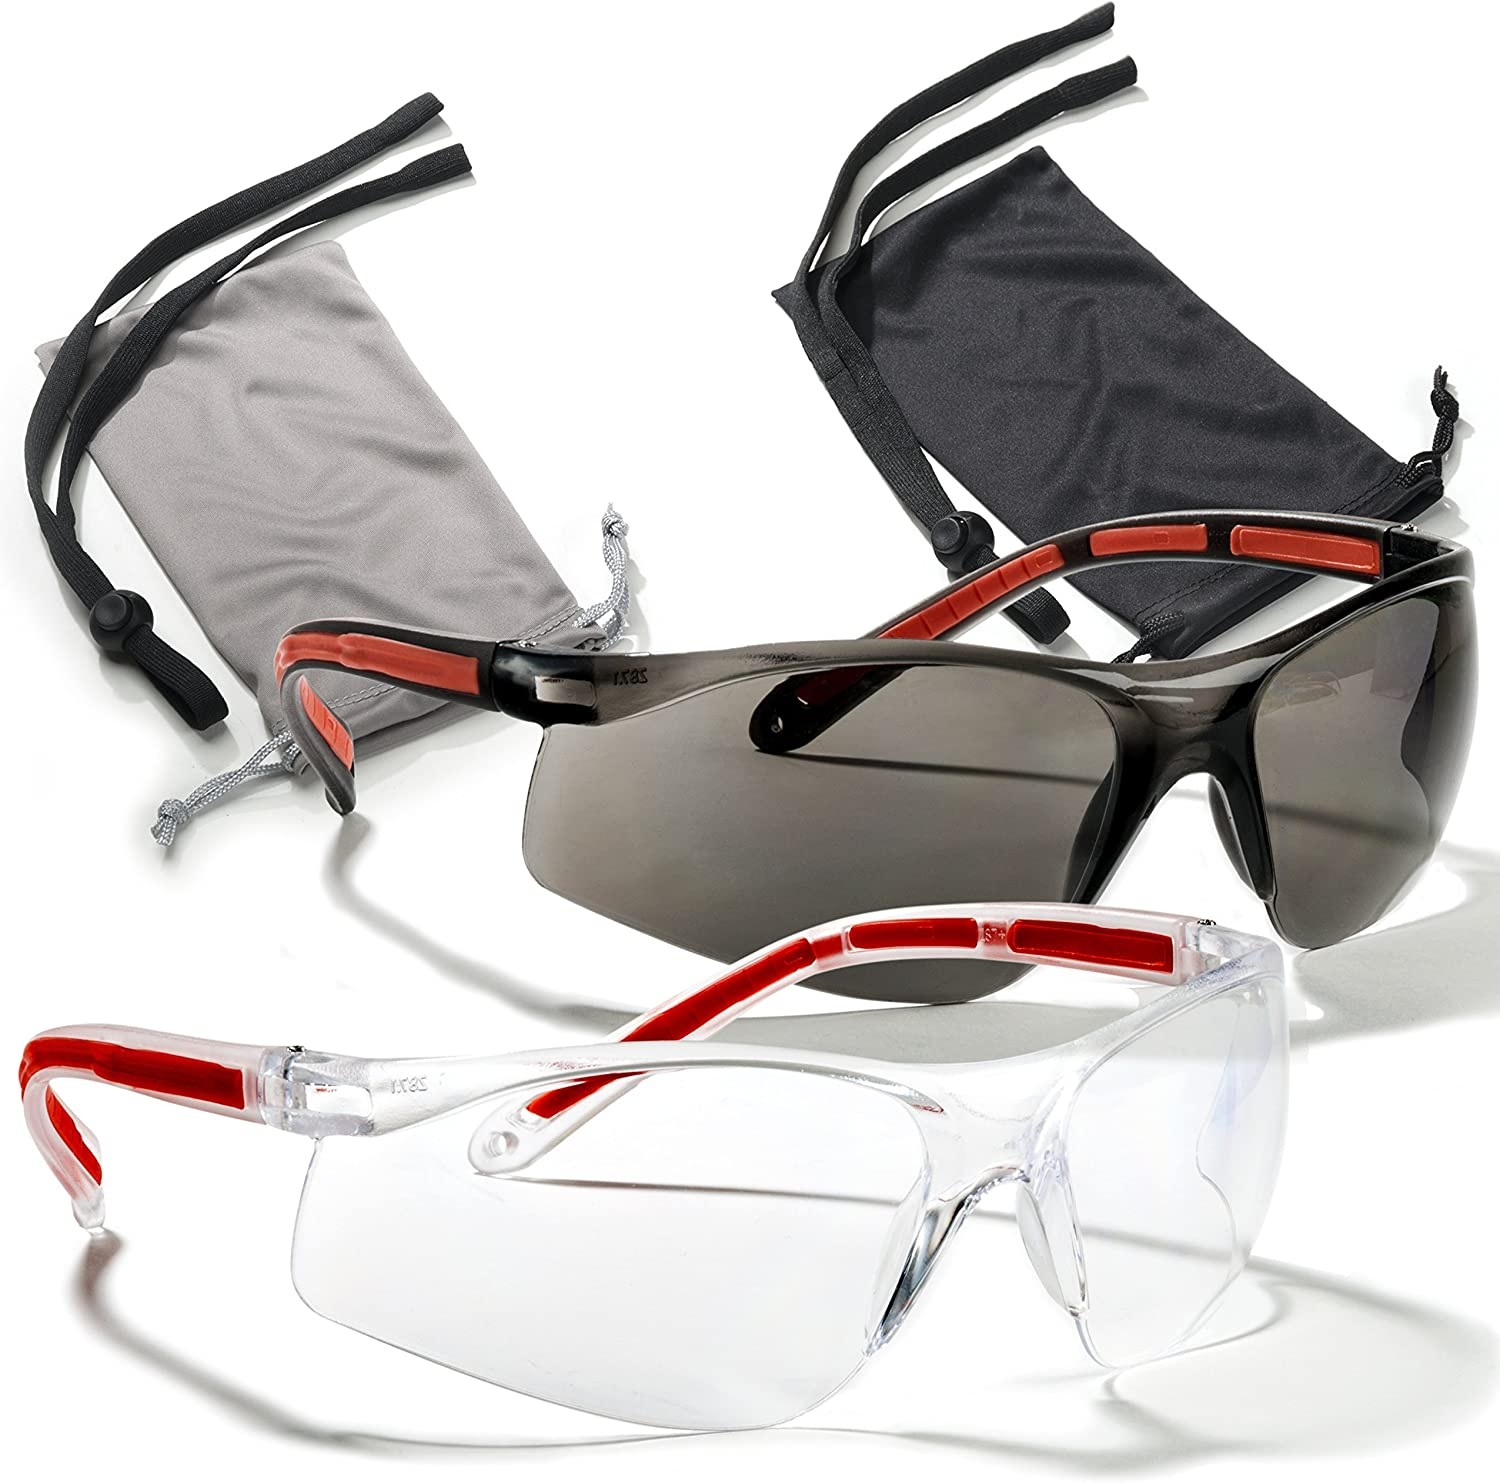 Safety Glasses Eye Protection - Comfort Eyewear - 2 Pair, 2 Neck Cords, 2 Cases - SuperLite and SuperClear Lens Technology, Z87.1 - CE 166 Certified…: Clothing